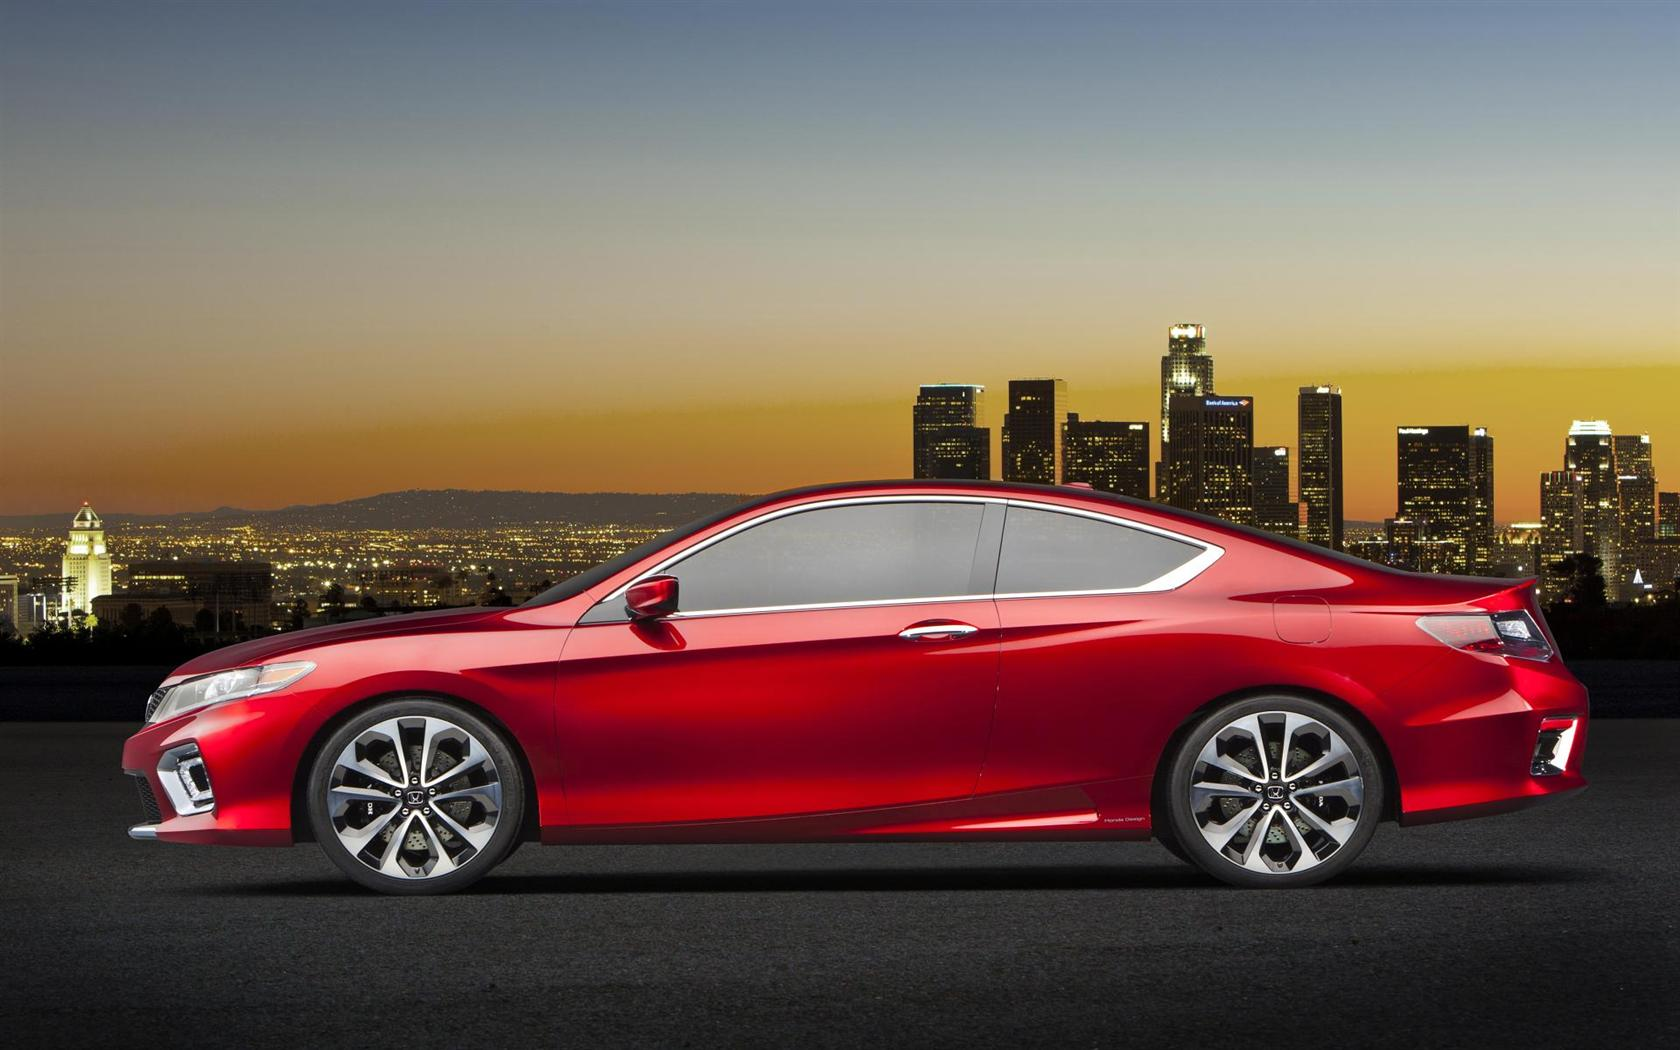 Honda Accord Concept 2018 >> 2013 Honda Accord Coupe Concept Image. Photo 2 of 15